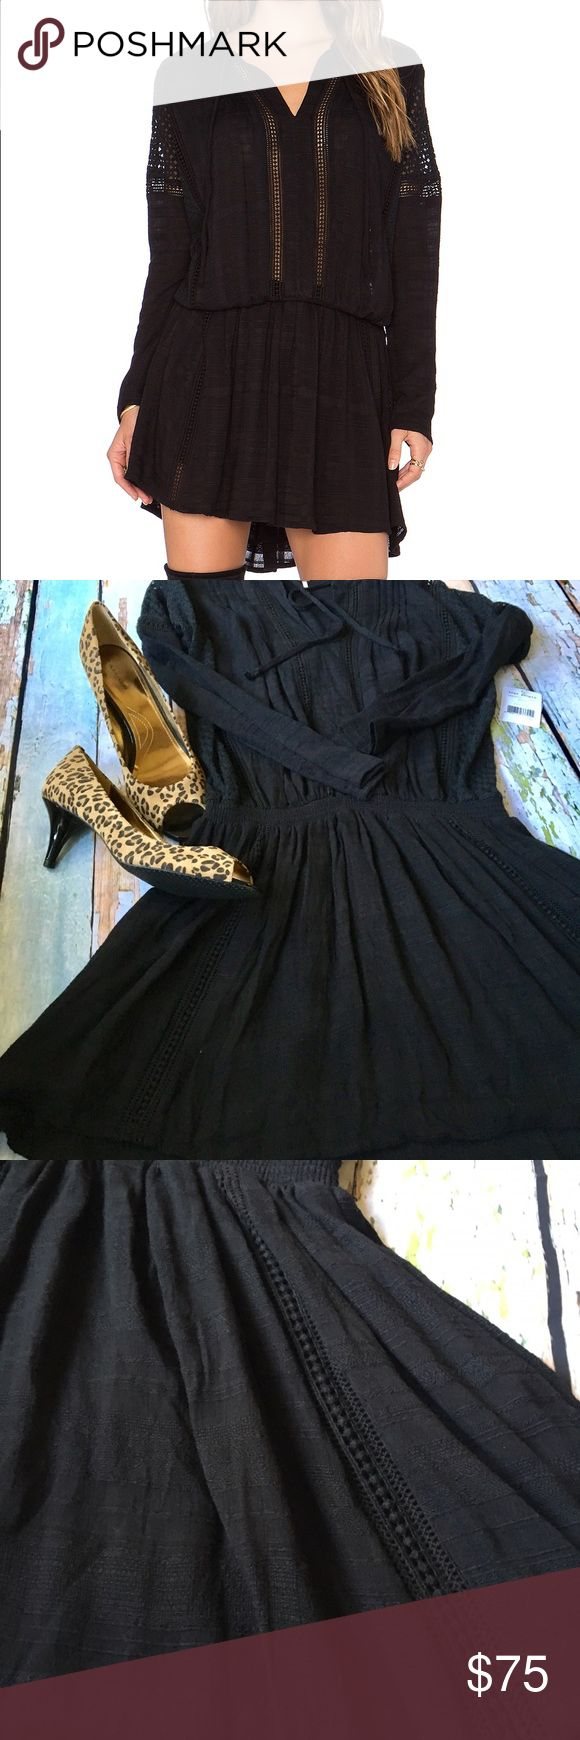 BNWT Free People Nomad Peasant Dress Perfect dress! Peasant style with cinched waist and Crochet detail throughout. Festival dress! BNWT lined throughout except sleeves. Free People Dresses Long Sleeve